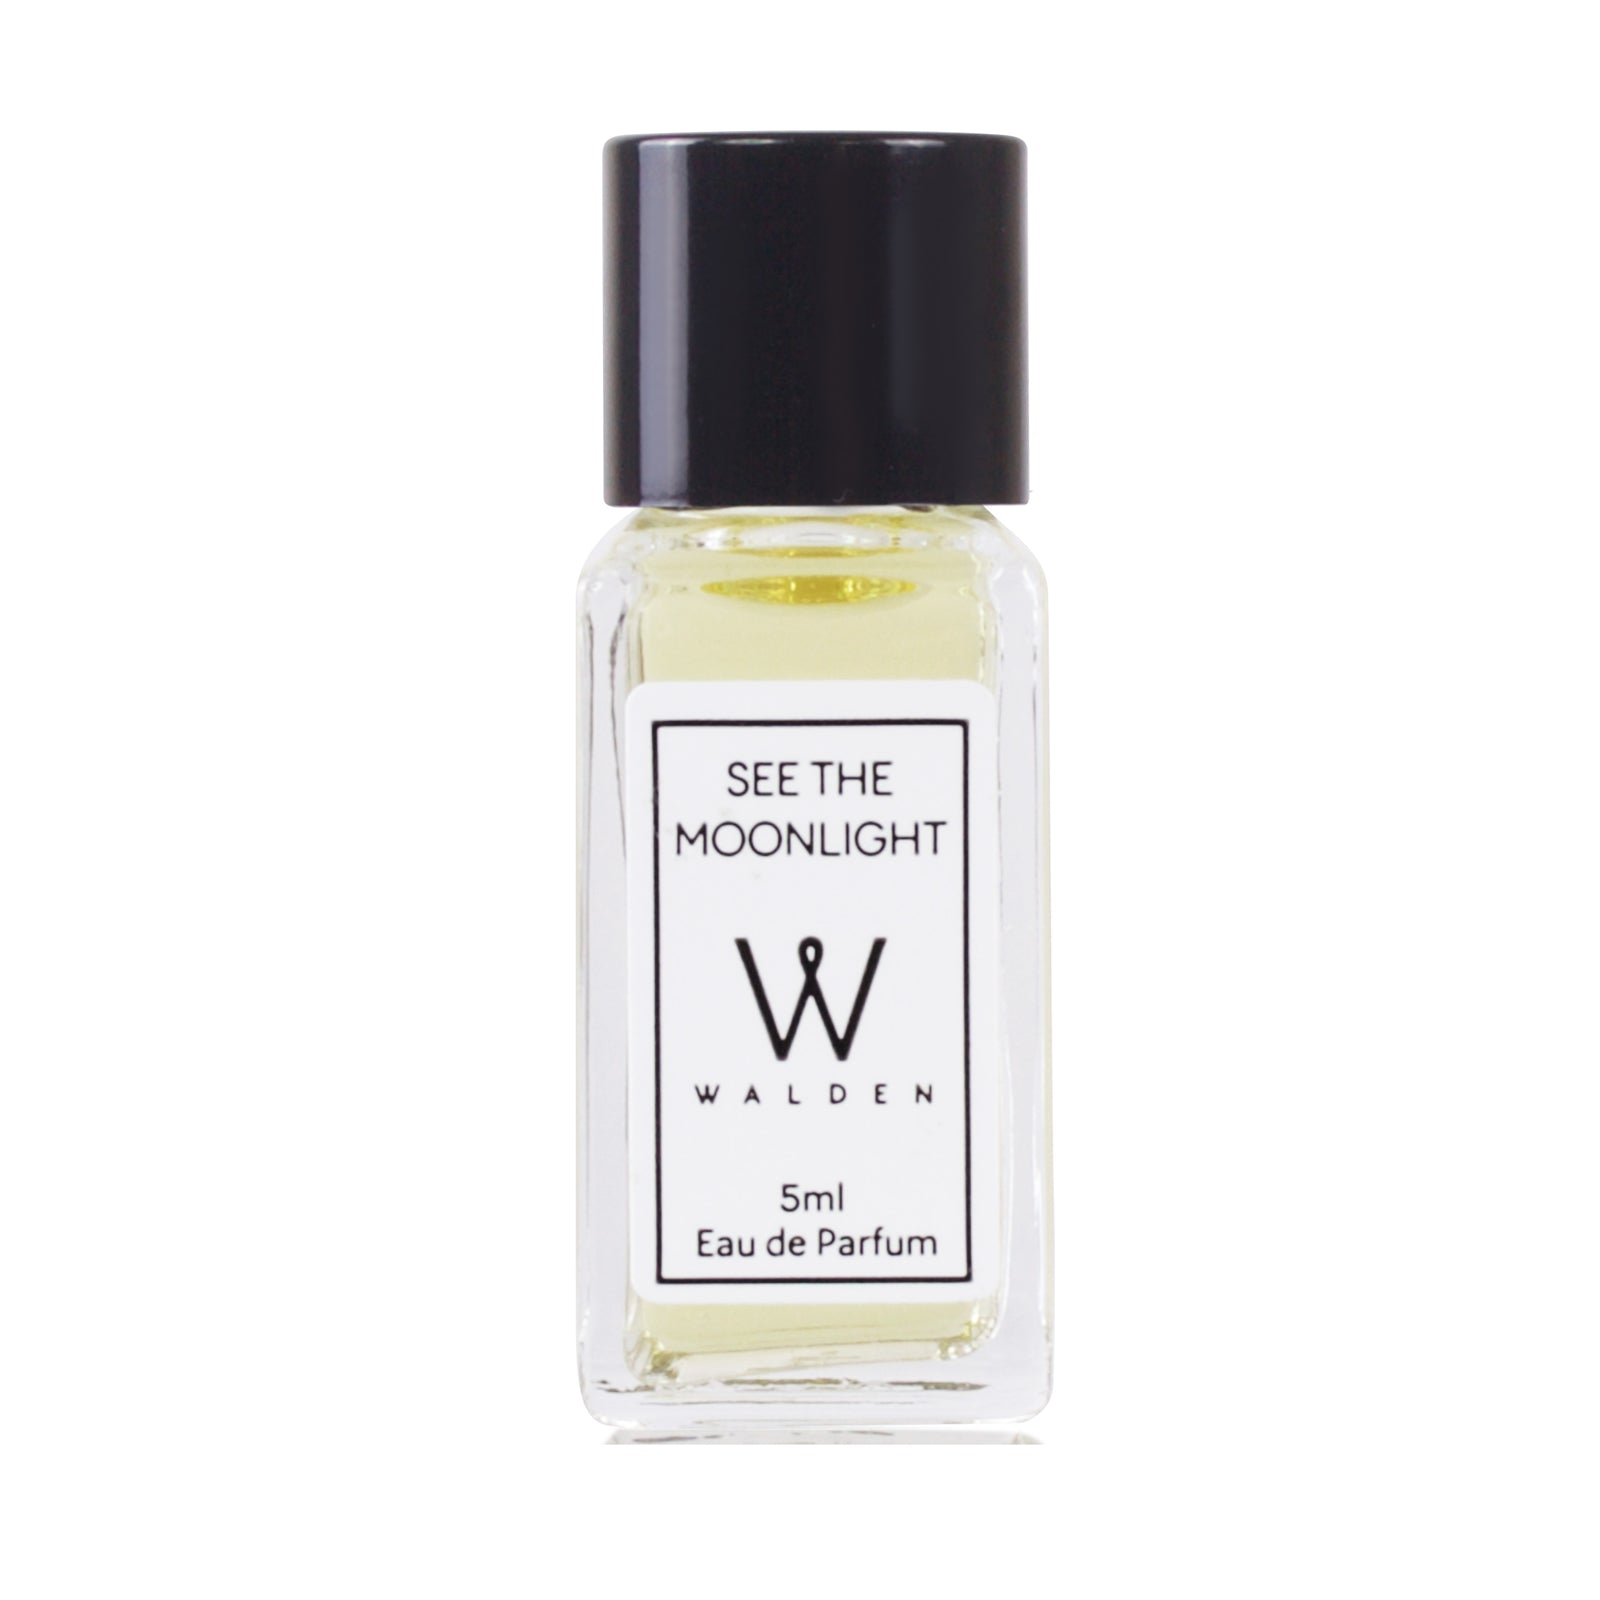 'See the Moonlight' Natural Perfume Sample 5ml